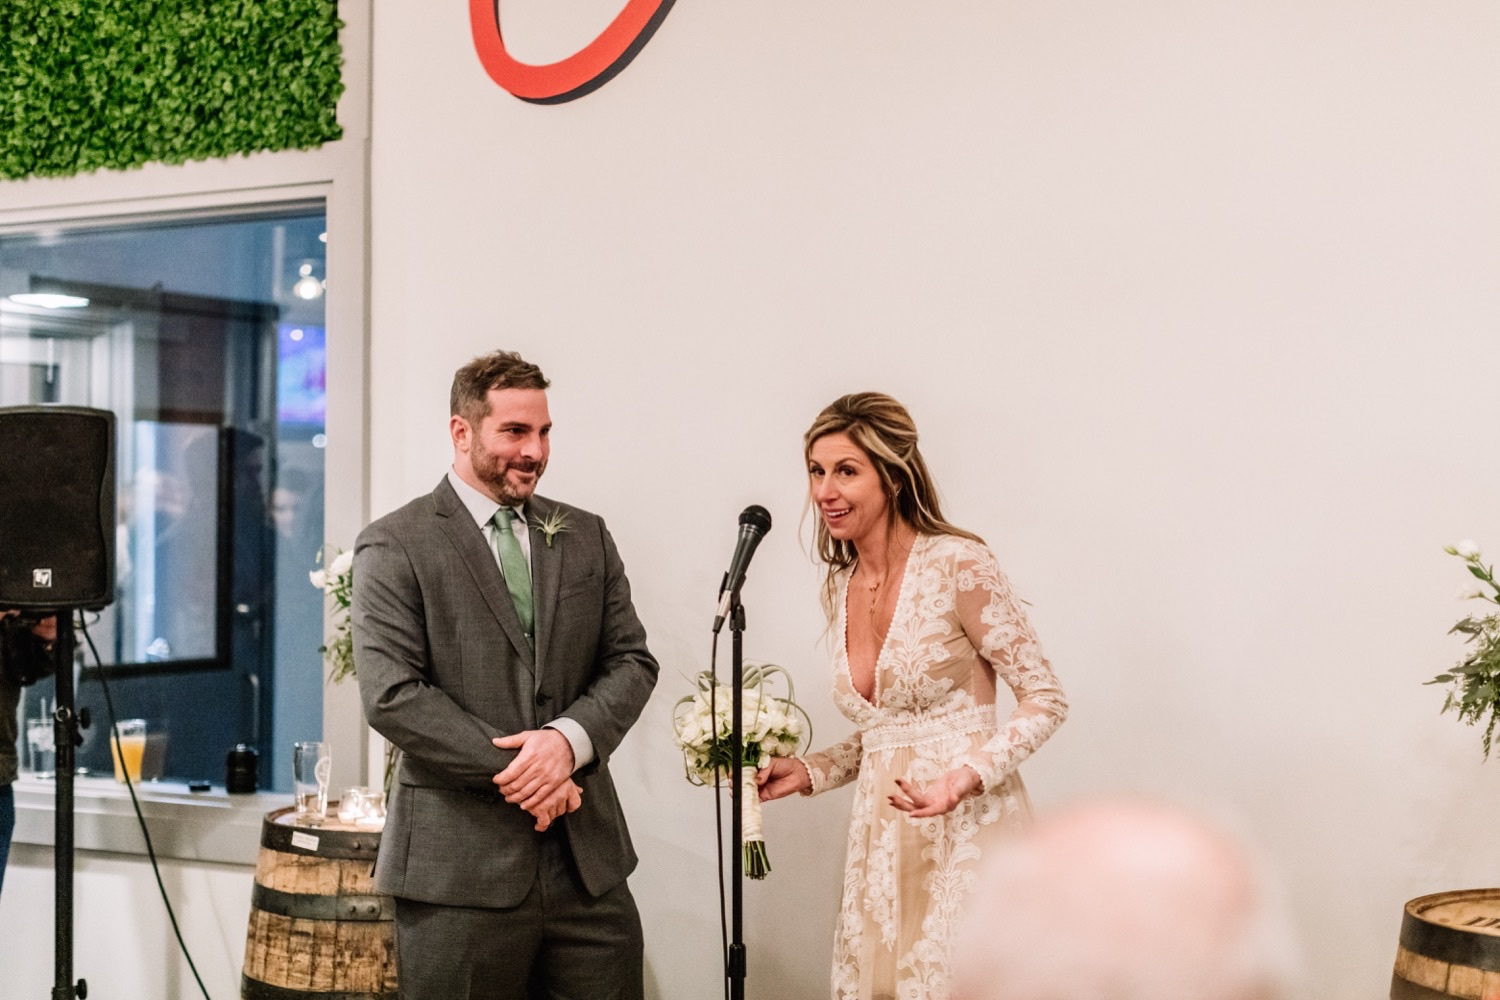 Emotional Surprise Wedding at Workhorse Brewing Company